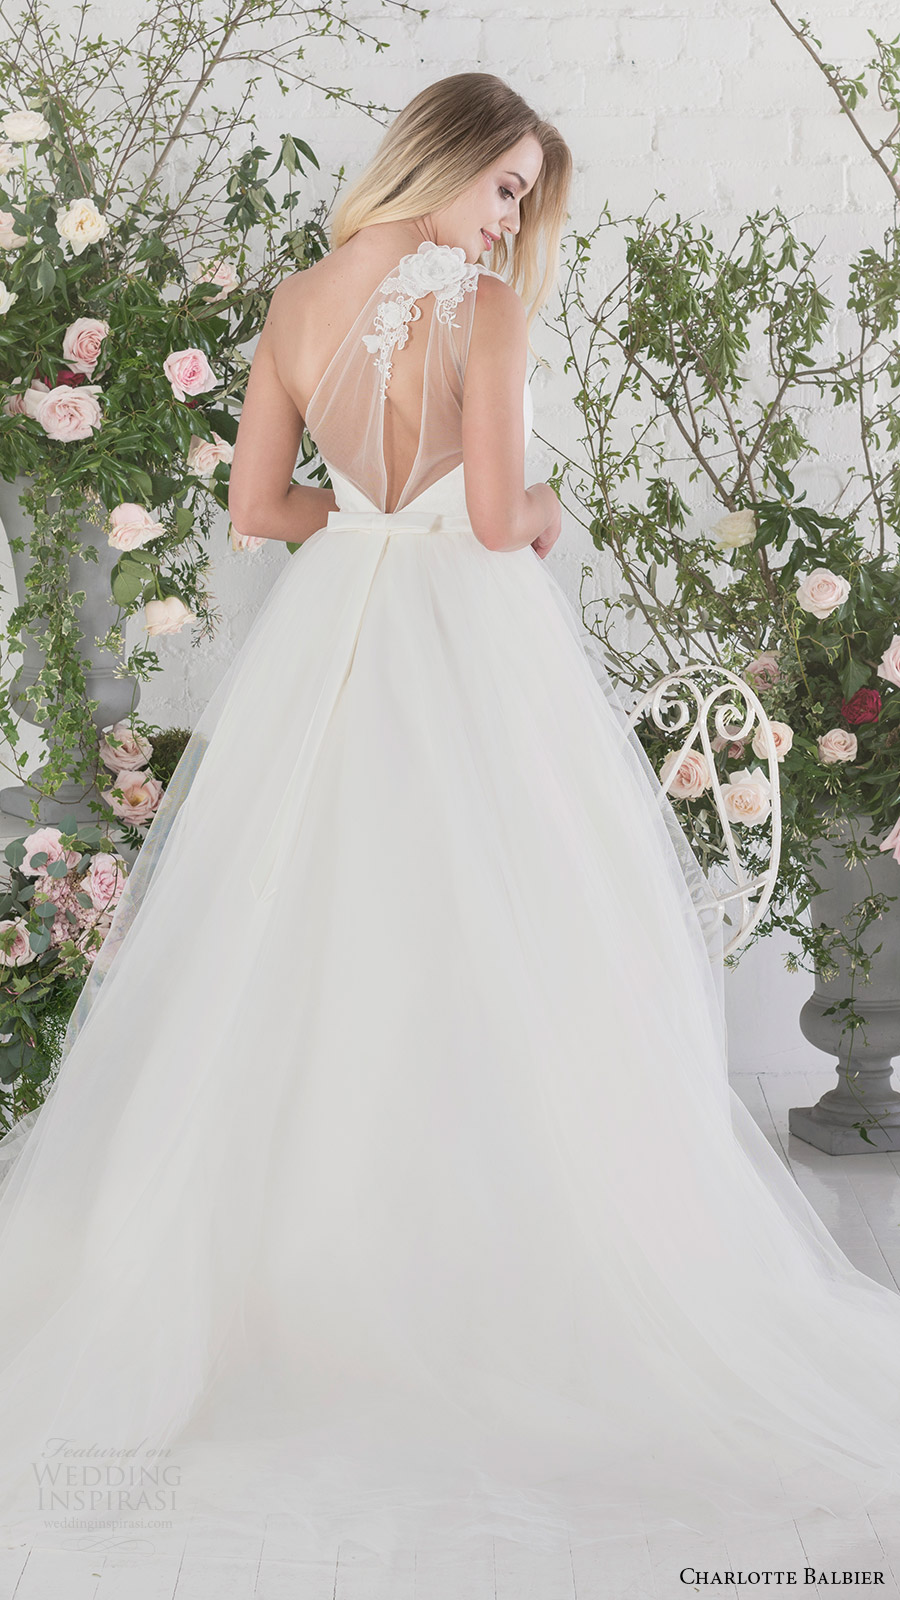 charlotte balbier bridal 2017 sweetheart illusion one shoulder ball gown wedding dress (rosemary) bv train